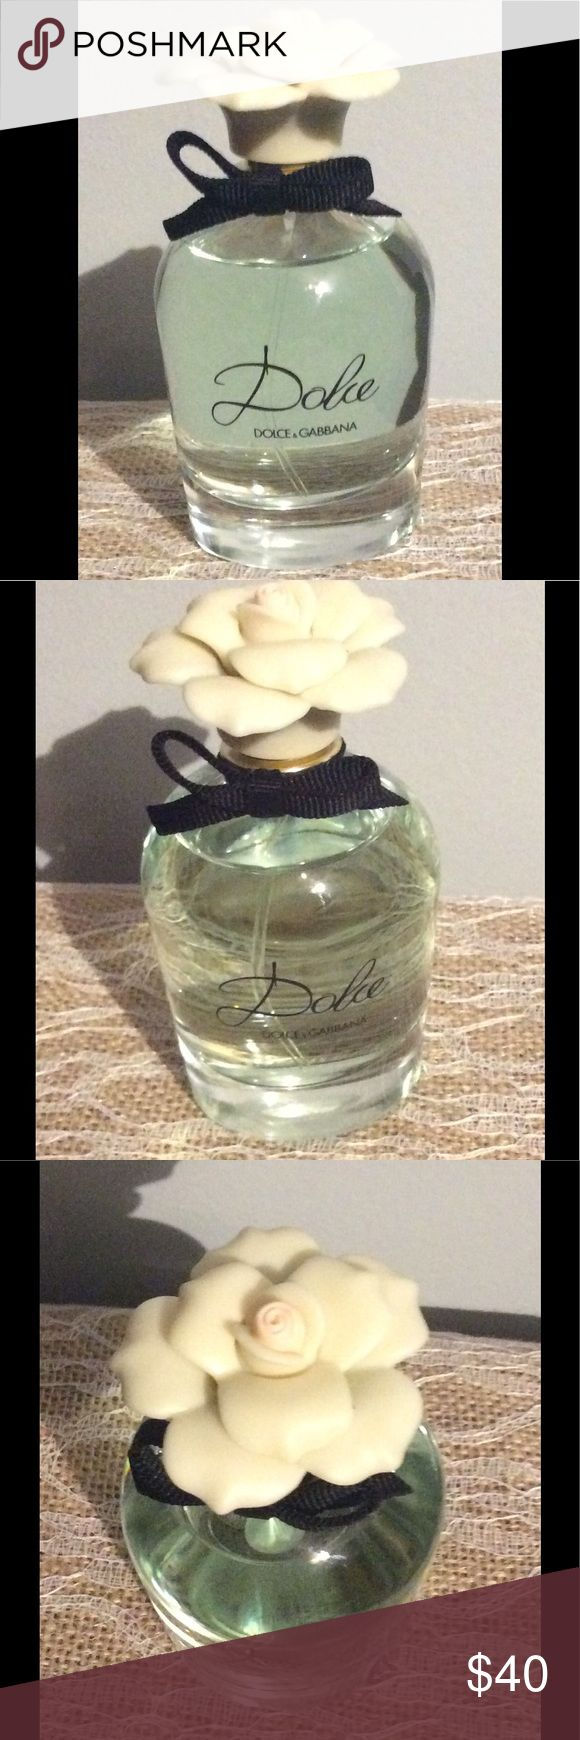 Dolce perfume Dolce by dolce and gabbana perfume new Dolce & Gabbana Other